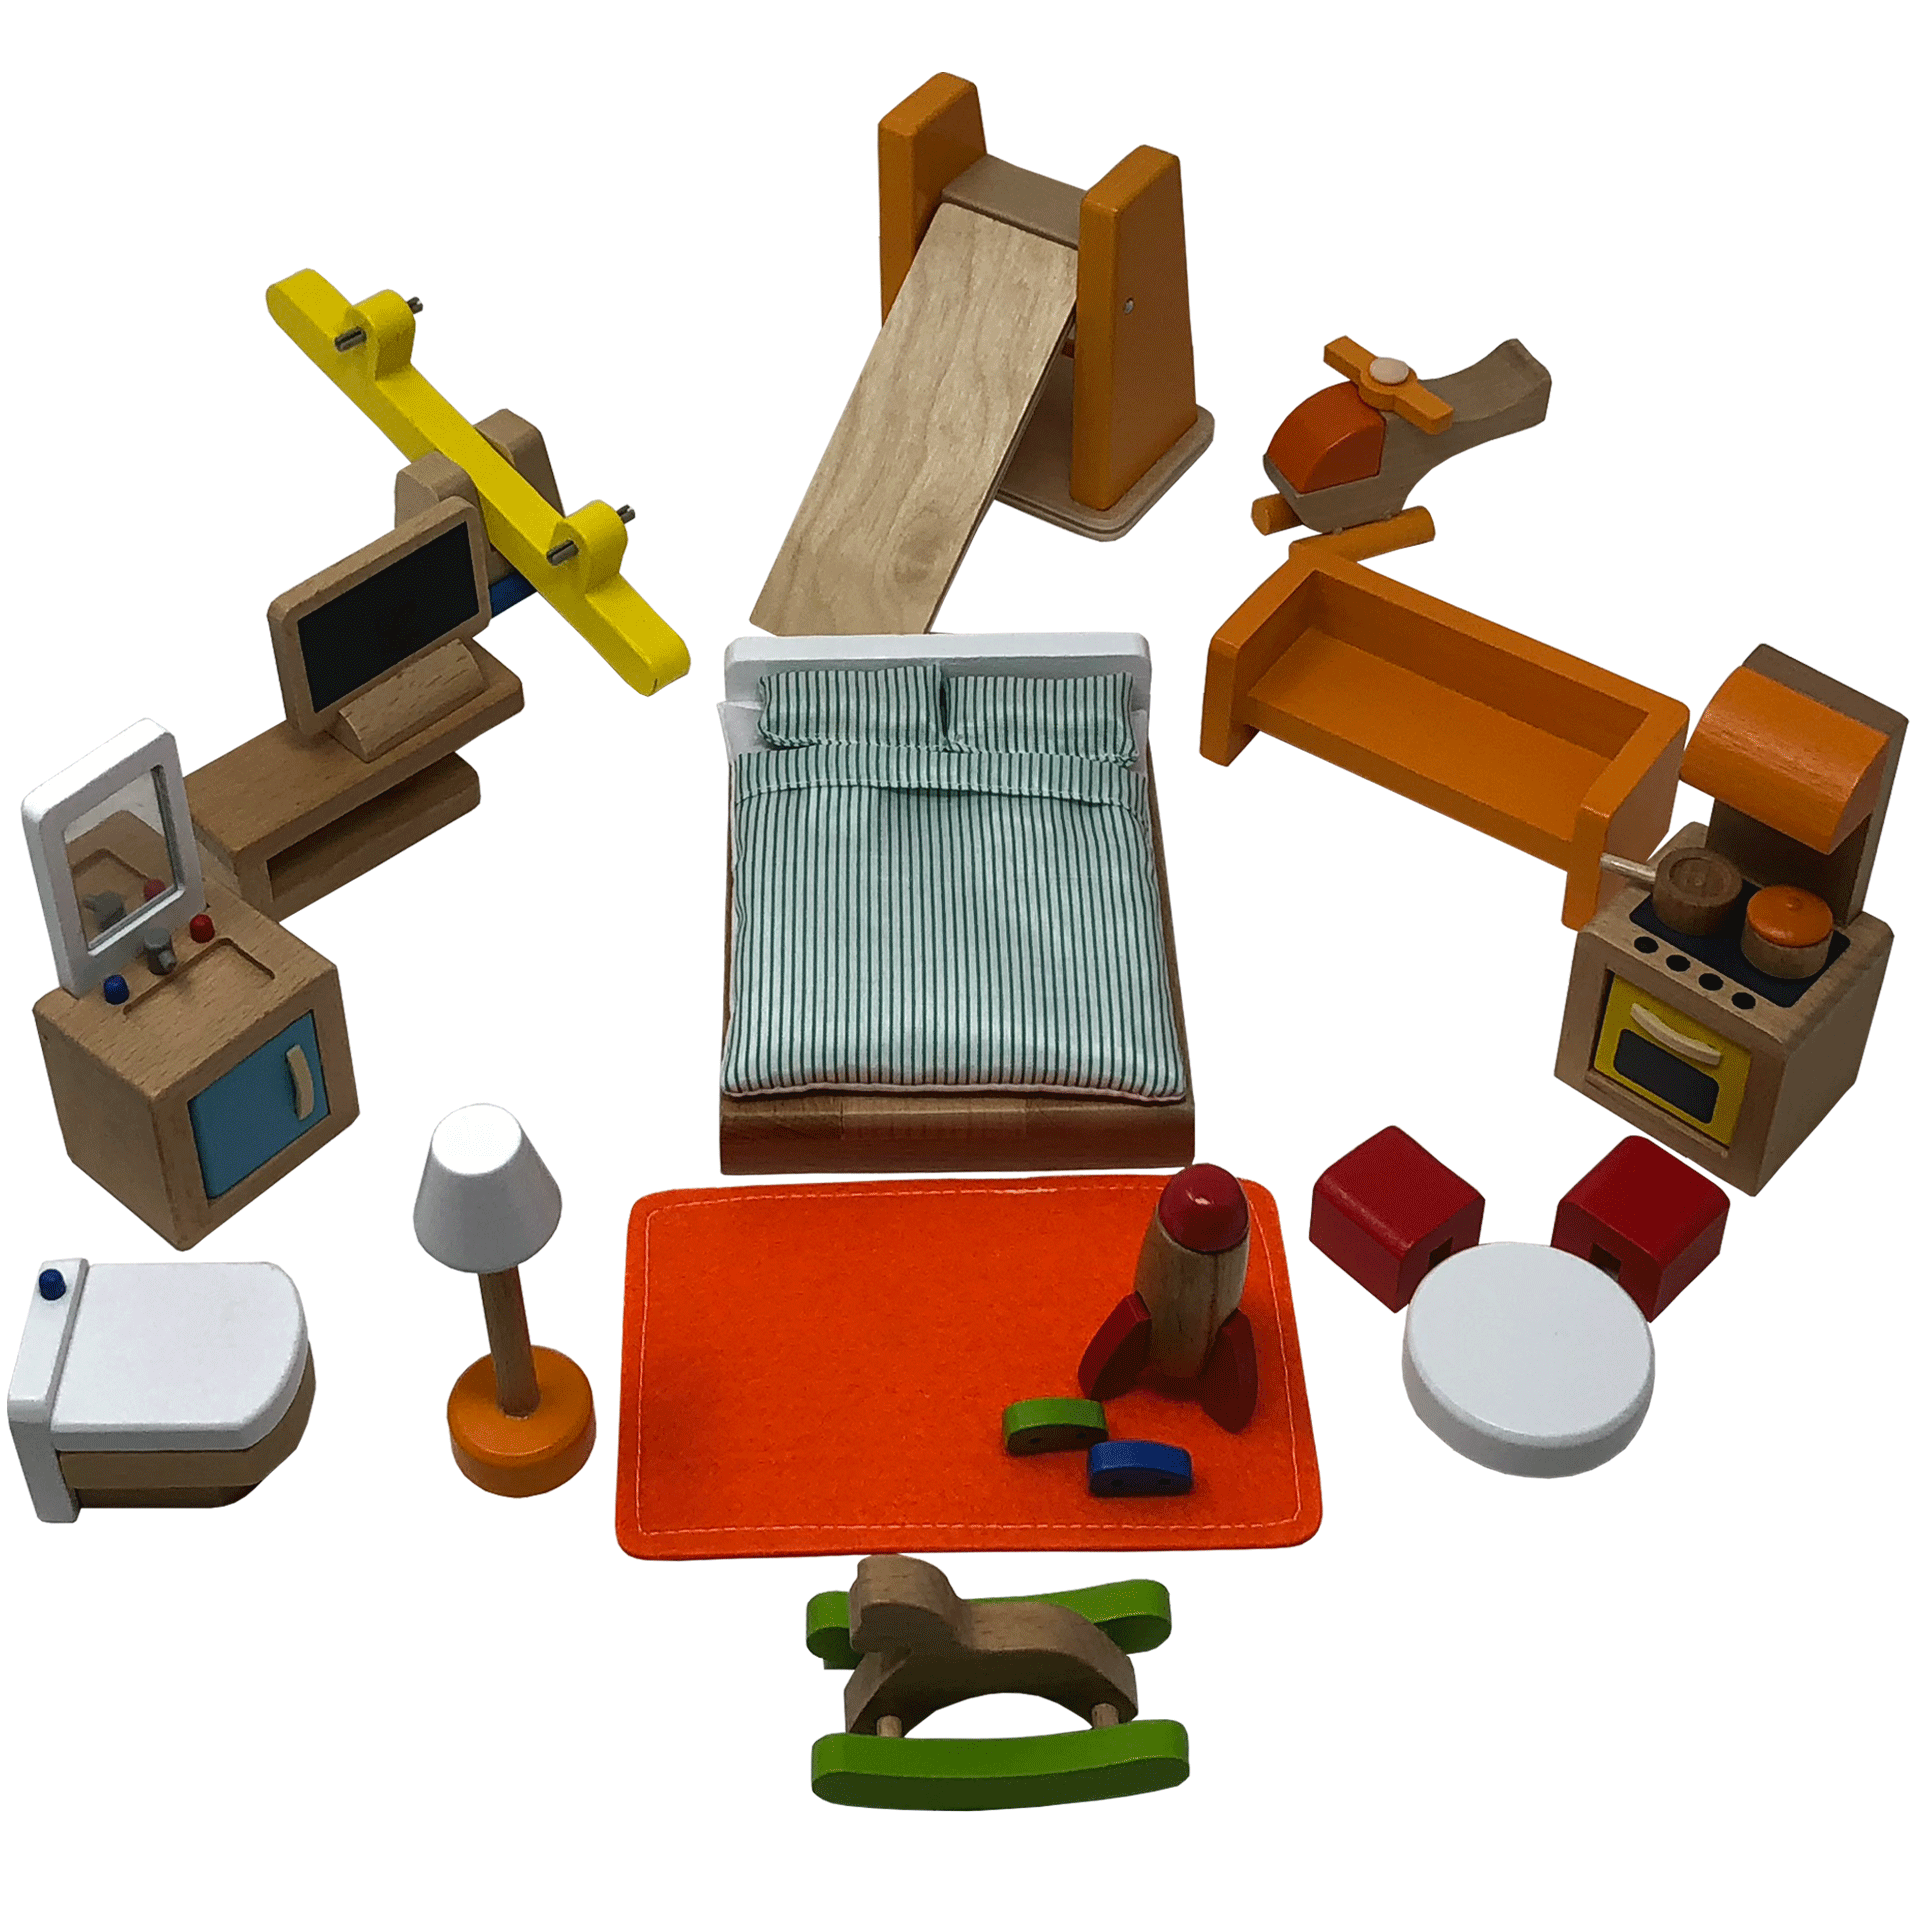 Dolls house s toys. Furniture clipart dollhouse furniture